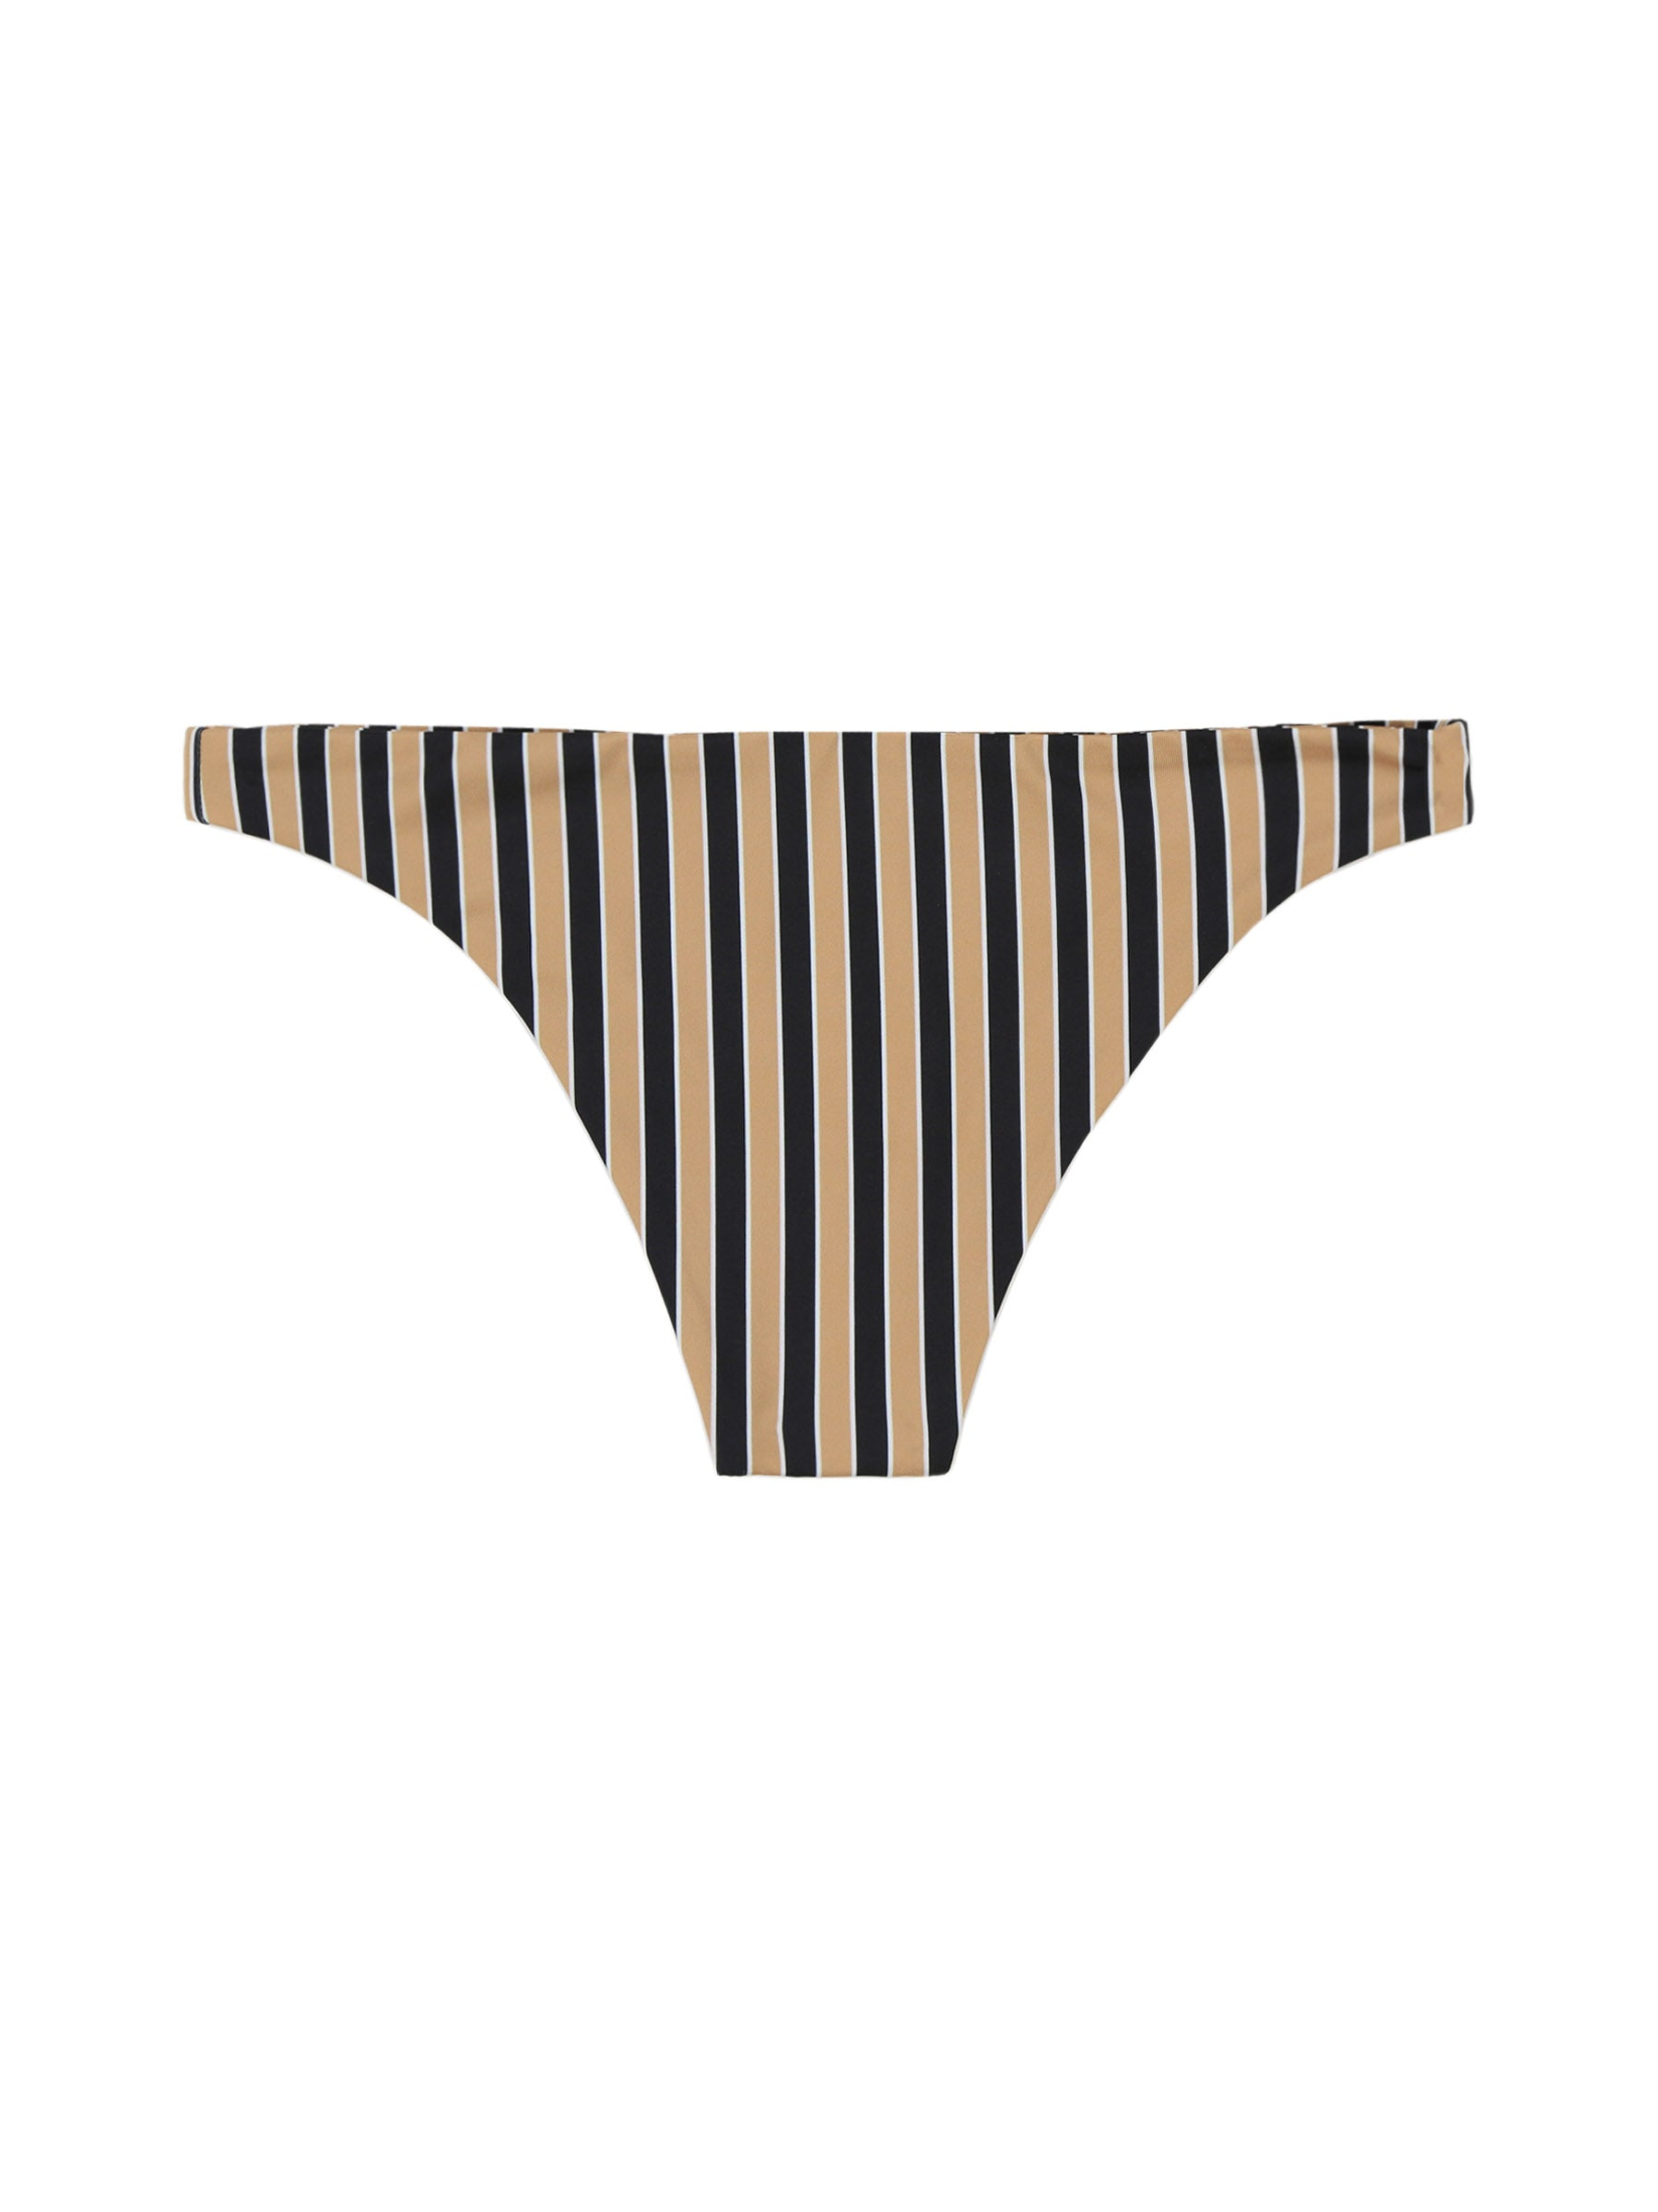 BRIEFBOTTOM(TAN/BLACKSTRIPE)